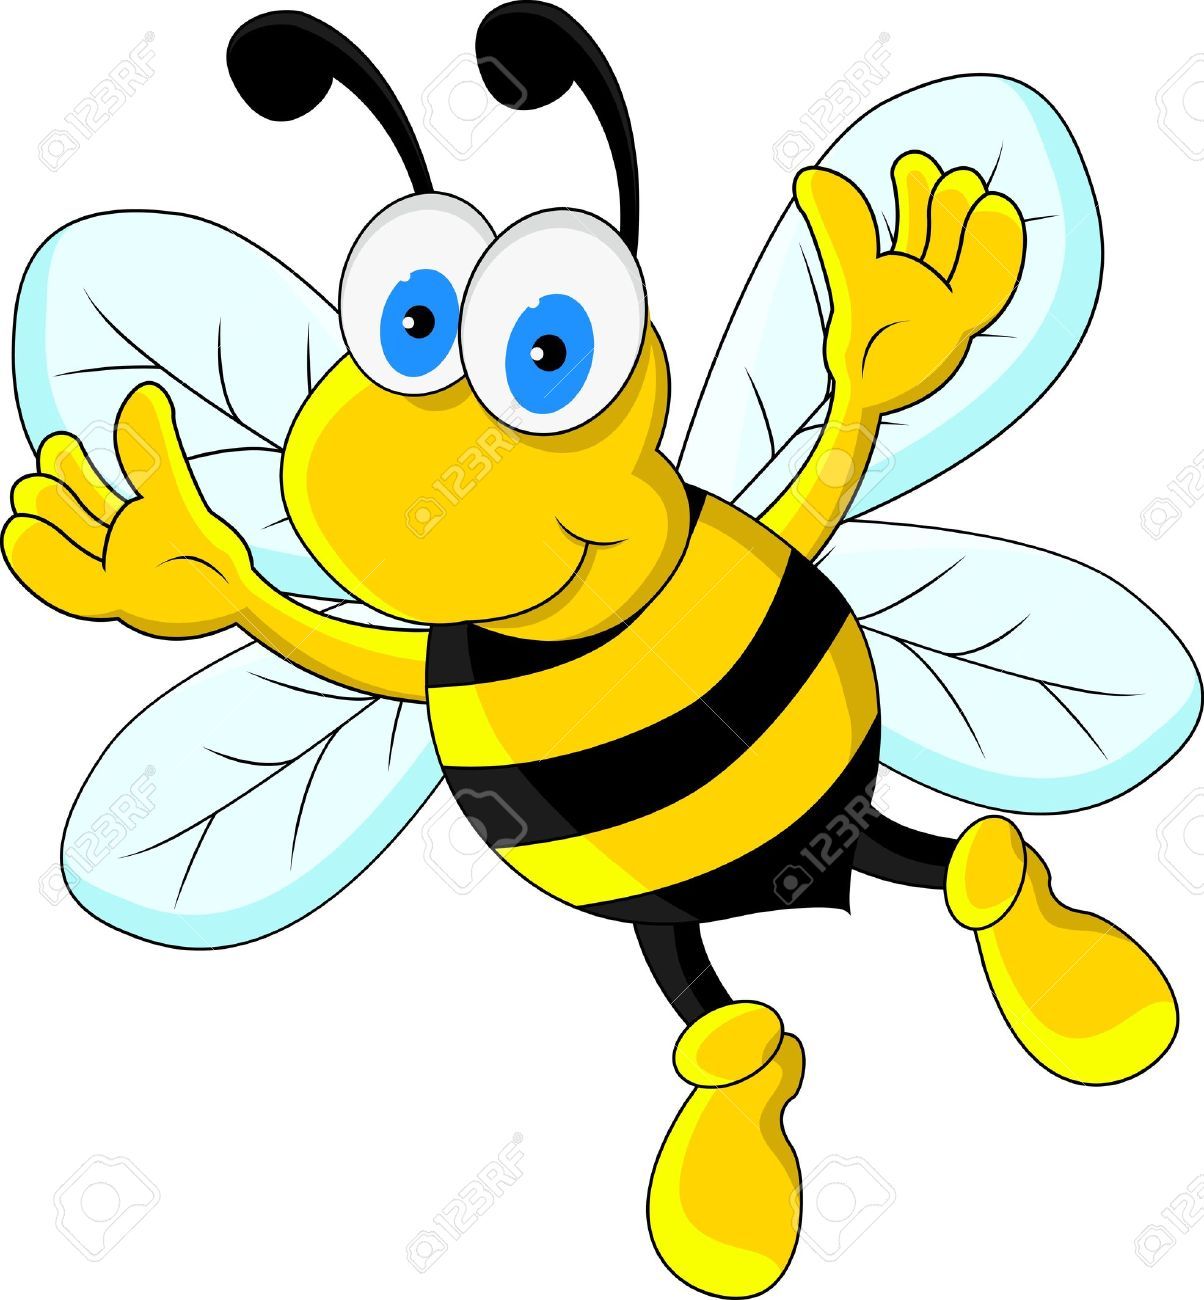 Bumble bee funny bee cartoon character